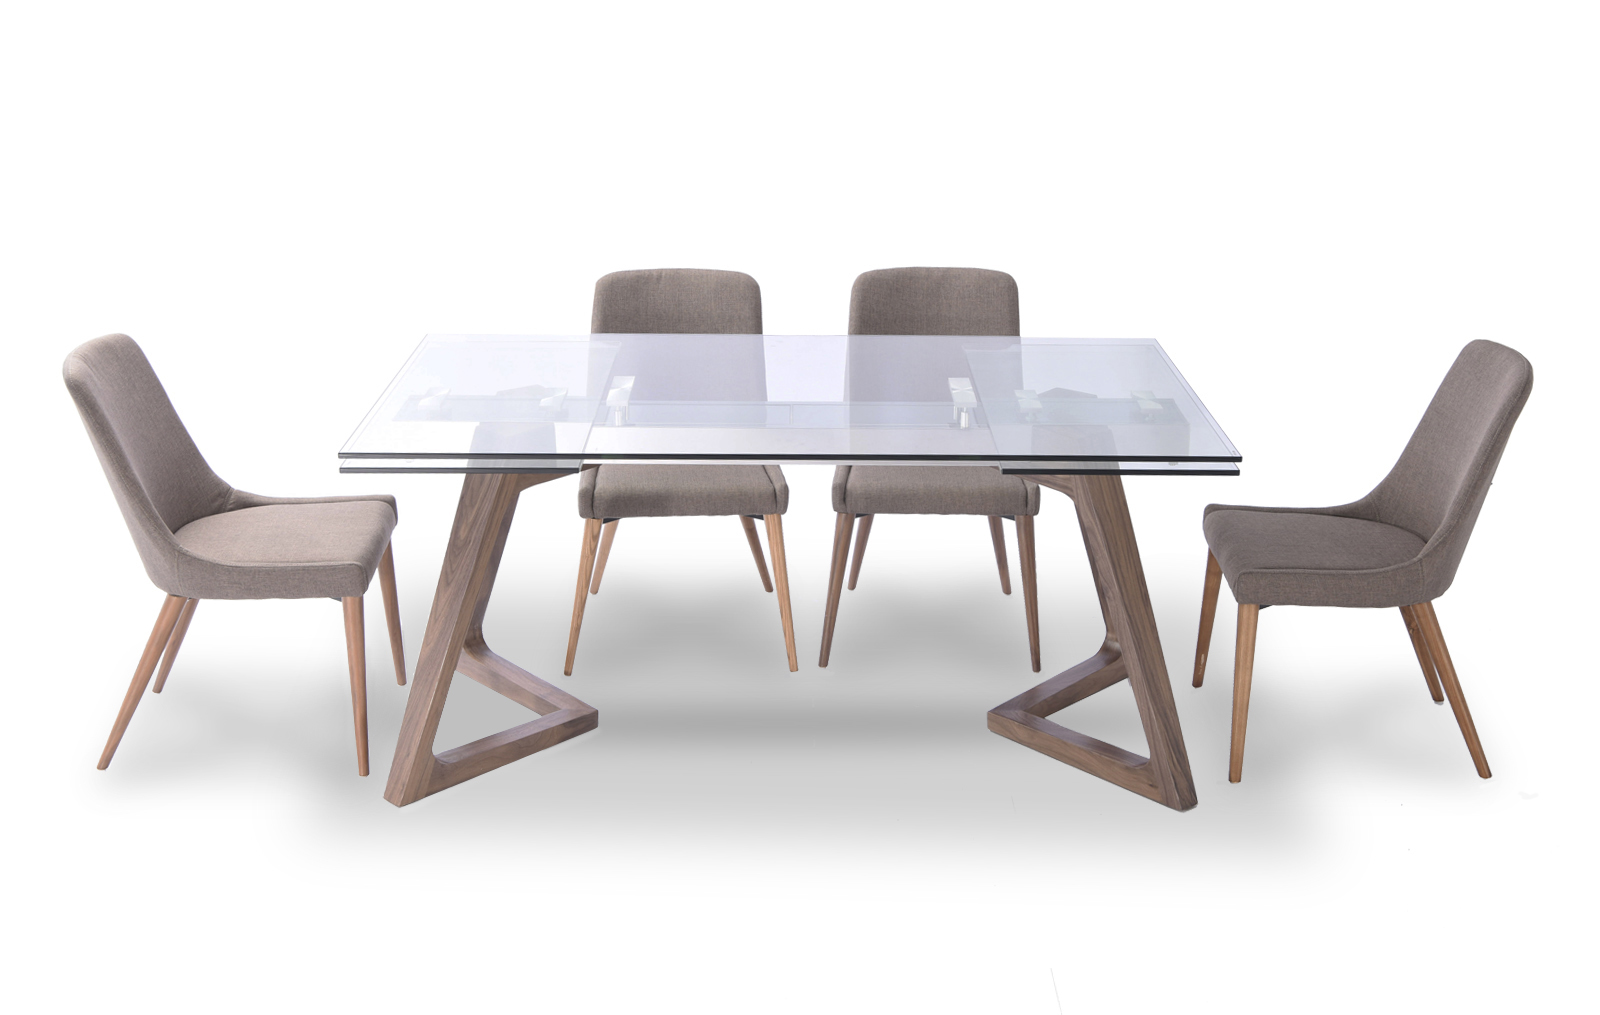 Modern Dining Table And Chairs 8811 Table And 941 Chairs Modern Casual Dining Sets